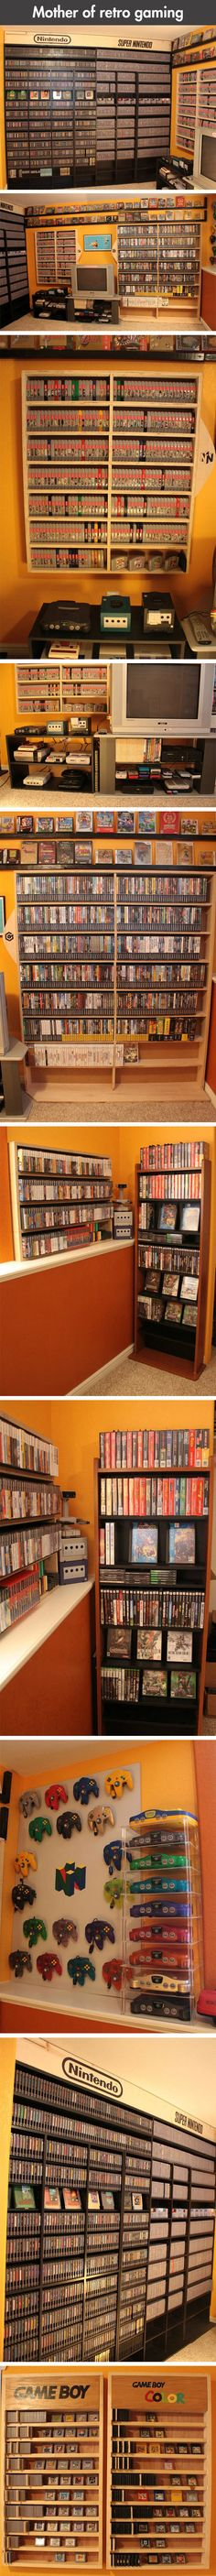 We have rounded up some awesome images of the ultimate Nintendo video game collection.